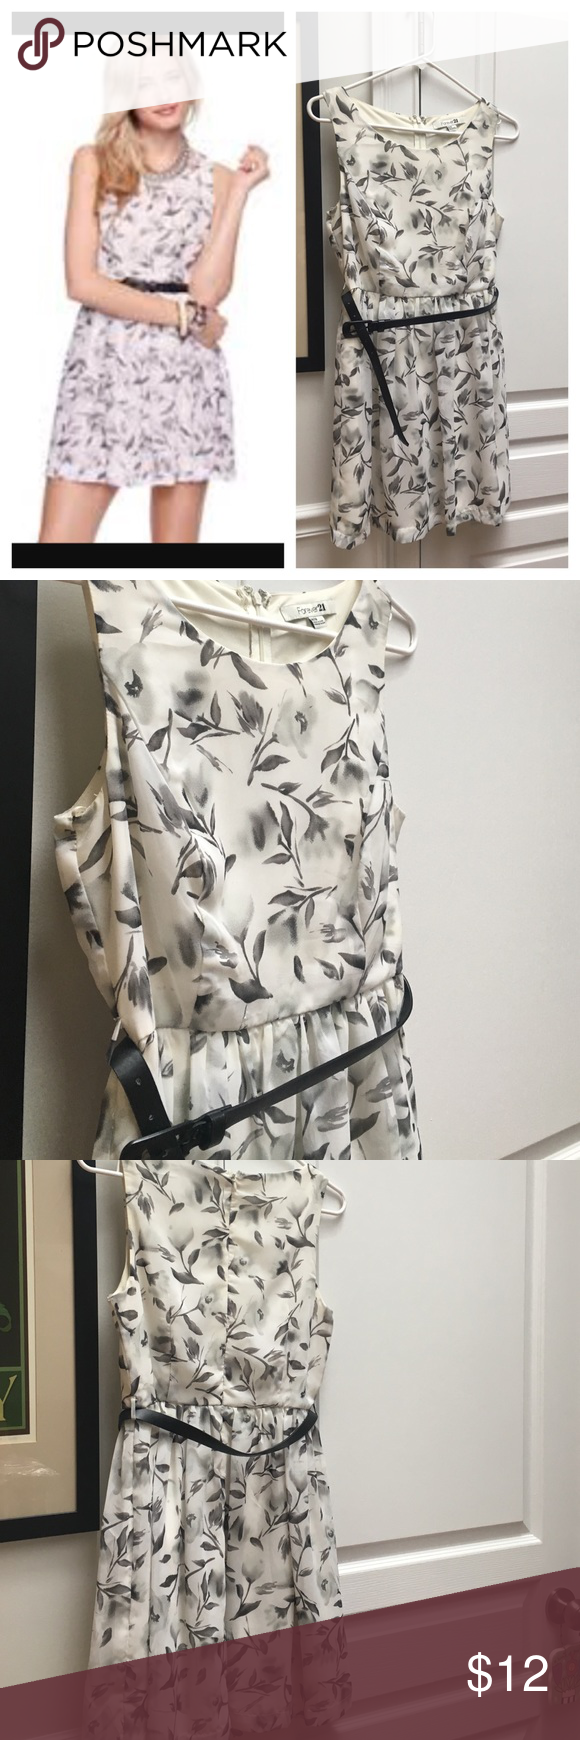 🆕 Belted floral dress Chiffon overlay with slip underneath. Leather-ish looking belt. Bust darts. 33 inches shoulder to hem. 16 inches armpit to armpit. Zip back. Excellent used condition. Forever 21 Dresses Mini